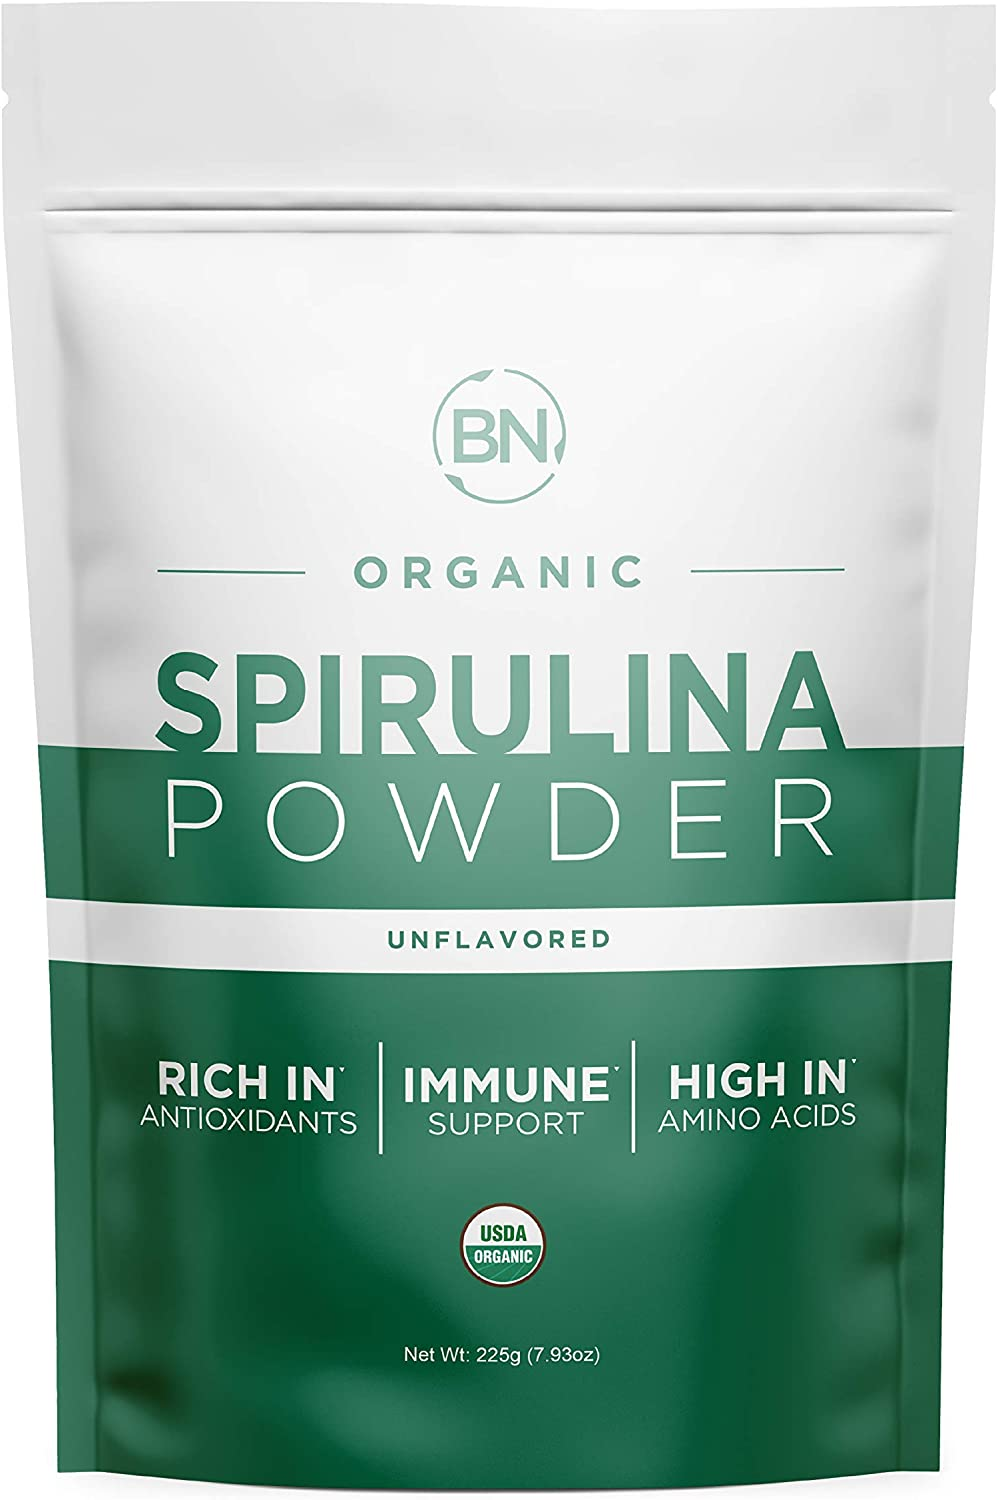 Spirulina Powder Organic - USDA Certified - RAW Nutrient Dense Over 70% Protein Per Serving - Purest Source Vegan Protein - Superfood - Rich in Vitamins and Minerals: Health & Personal Care